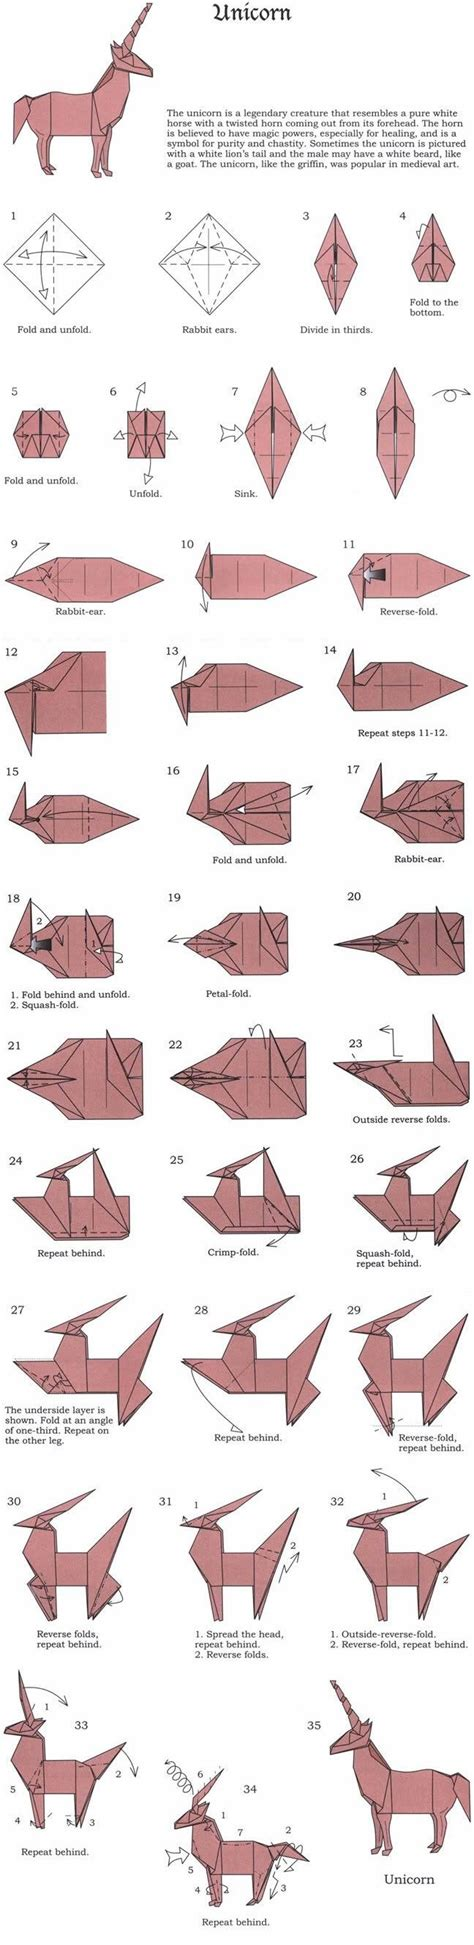 Origami Unicorn Diagram - origami unicorn 1 35 complete diagram projects to try